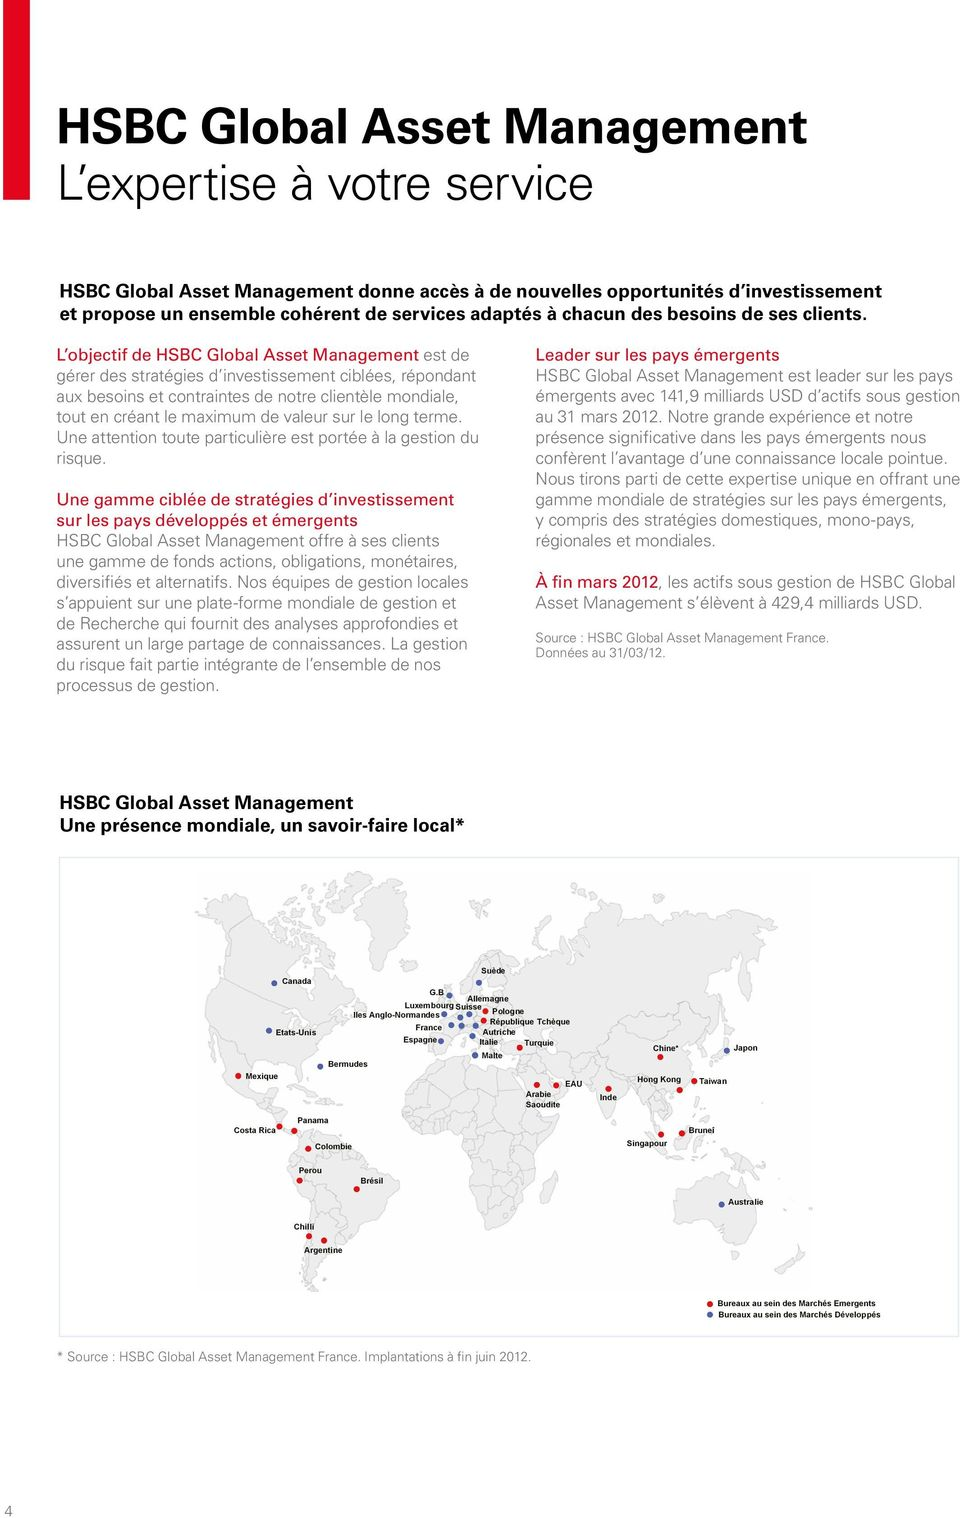 hsbc globalization Global research provides research material, events advisories, news updates and market analysis tools on a regular basis to hsbc clients.